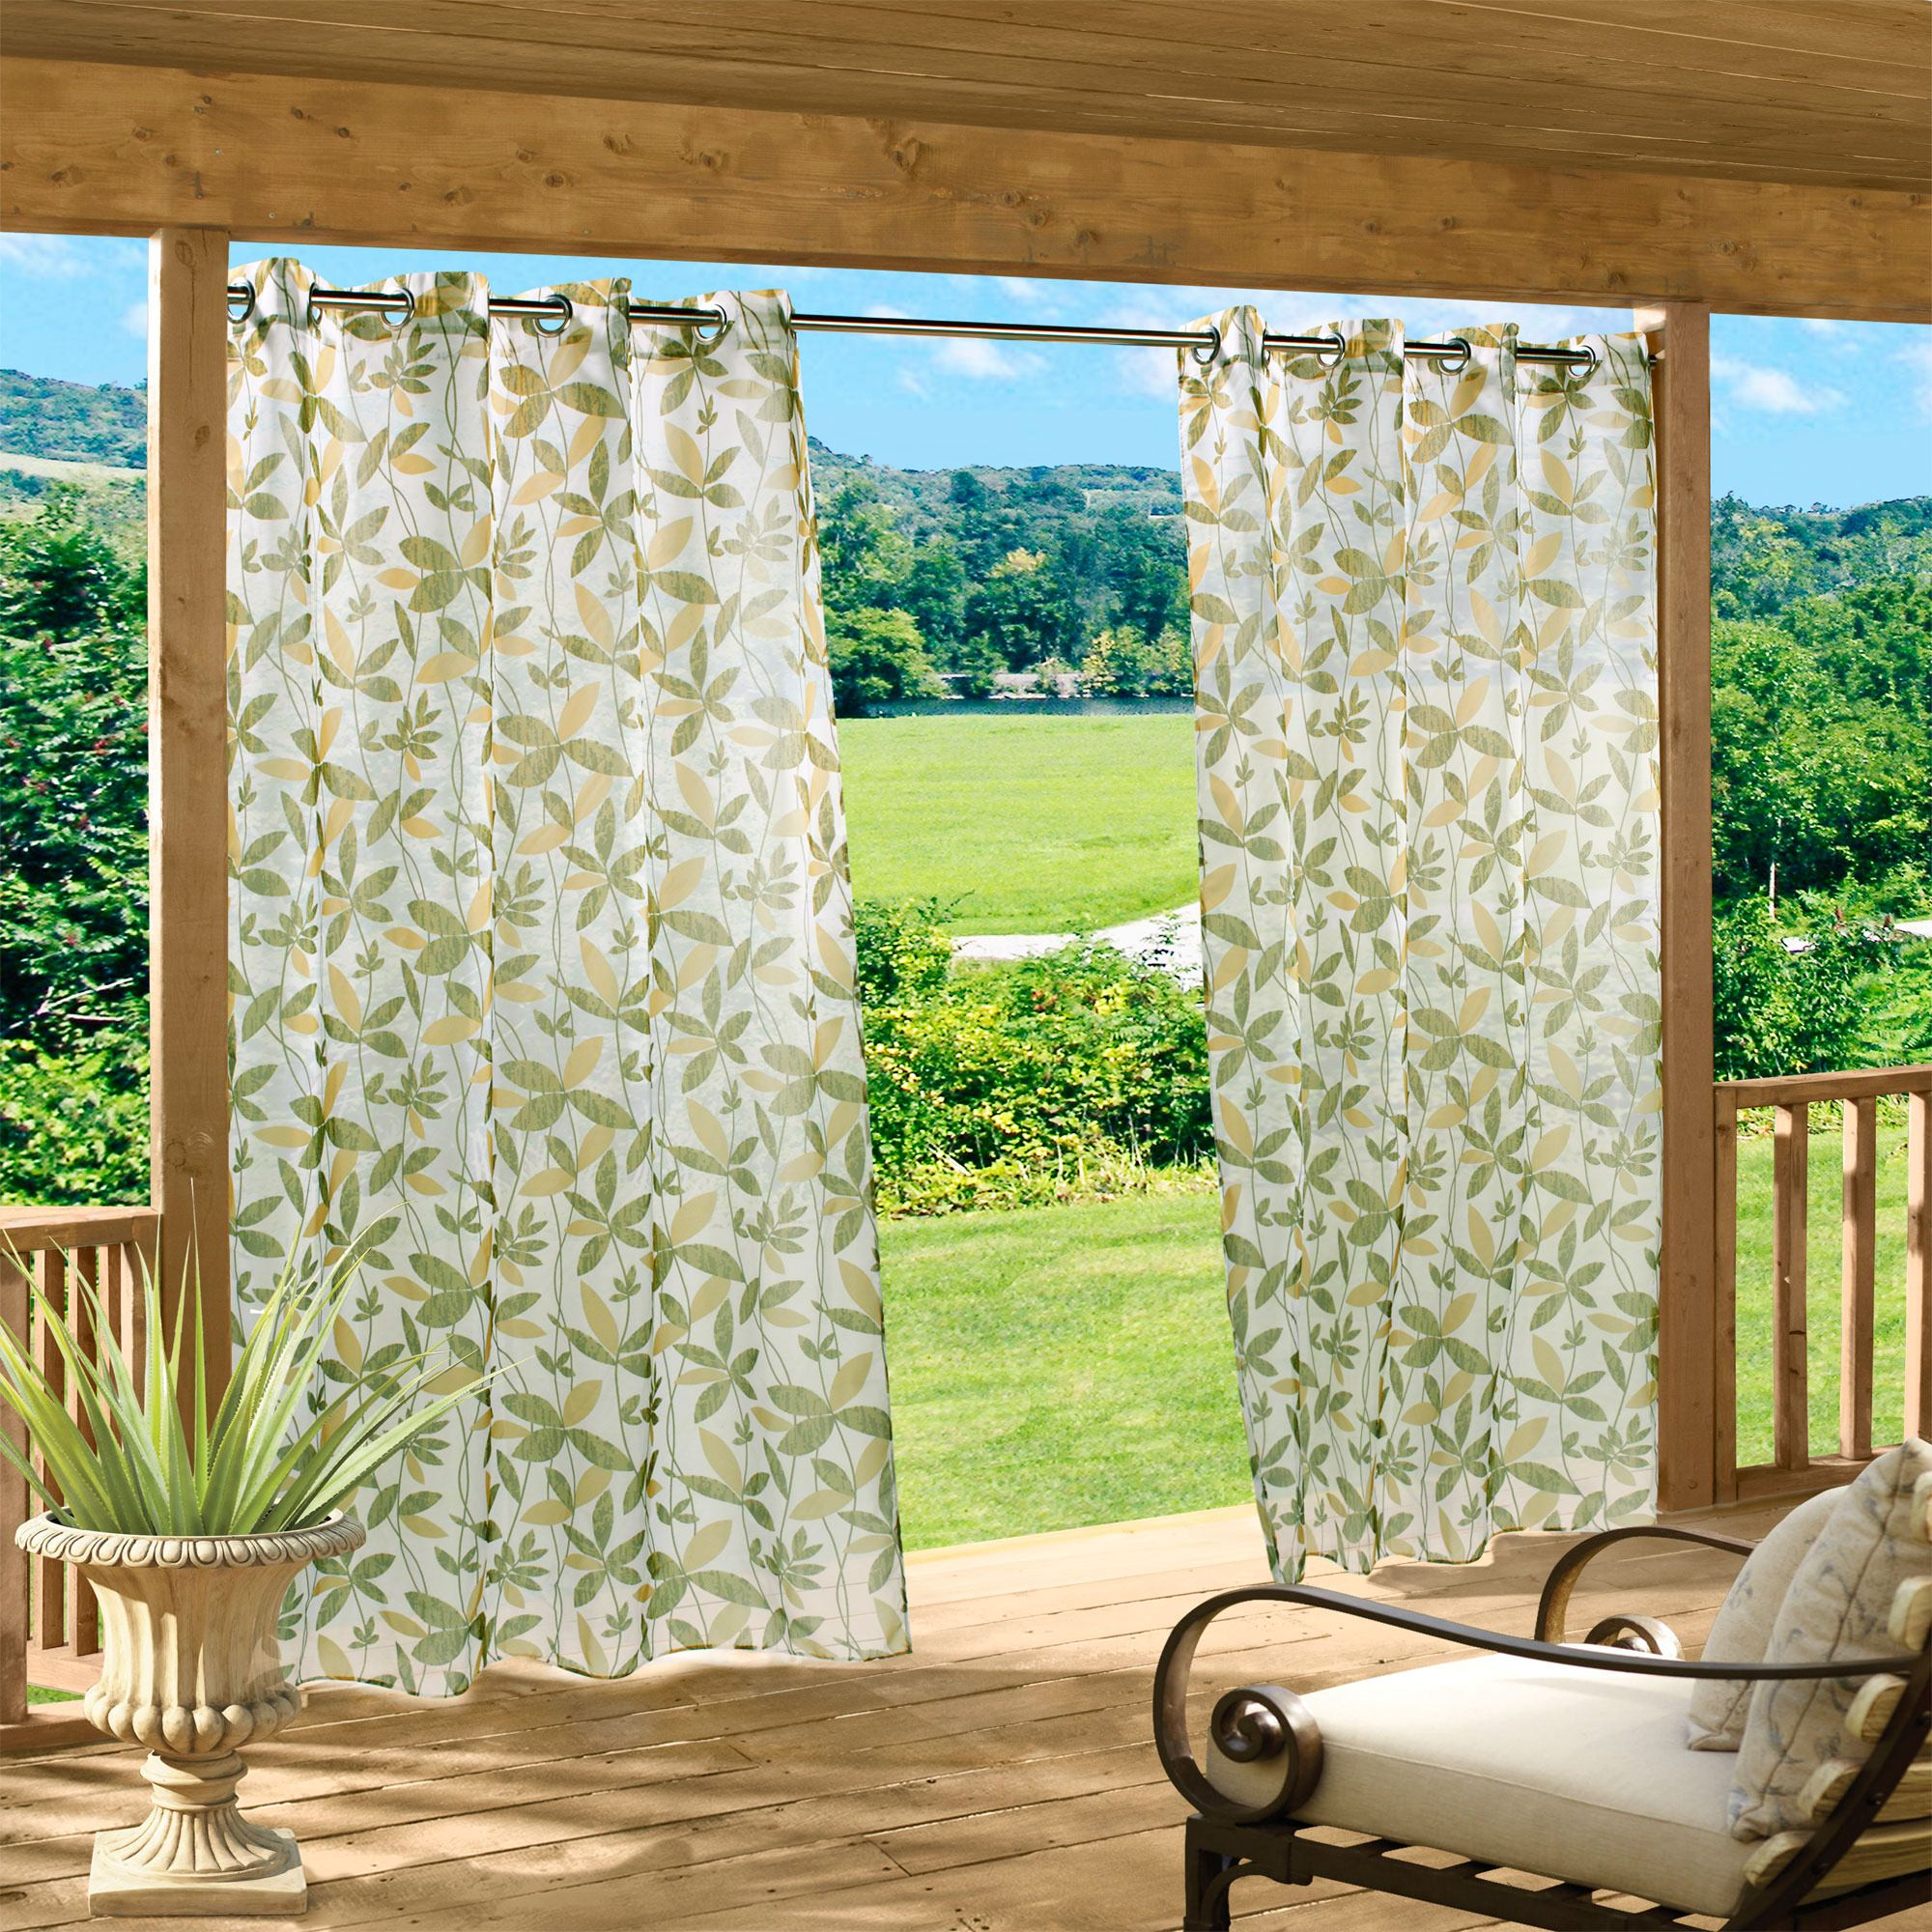 sheer ip escape panel walmart curtain indoor outdoor grommet curtains com